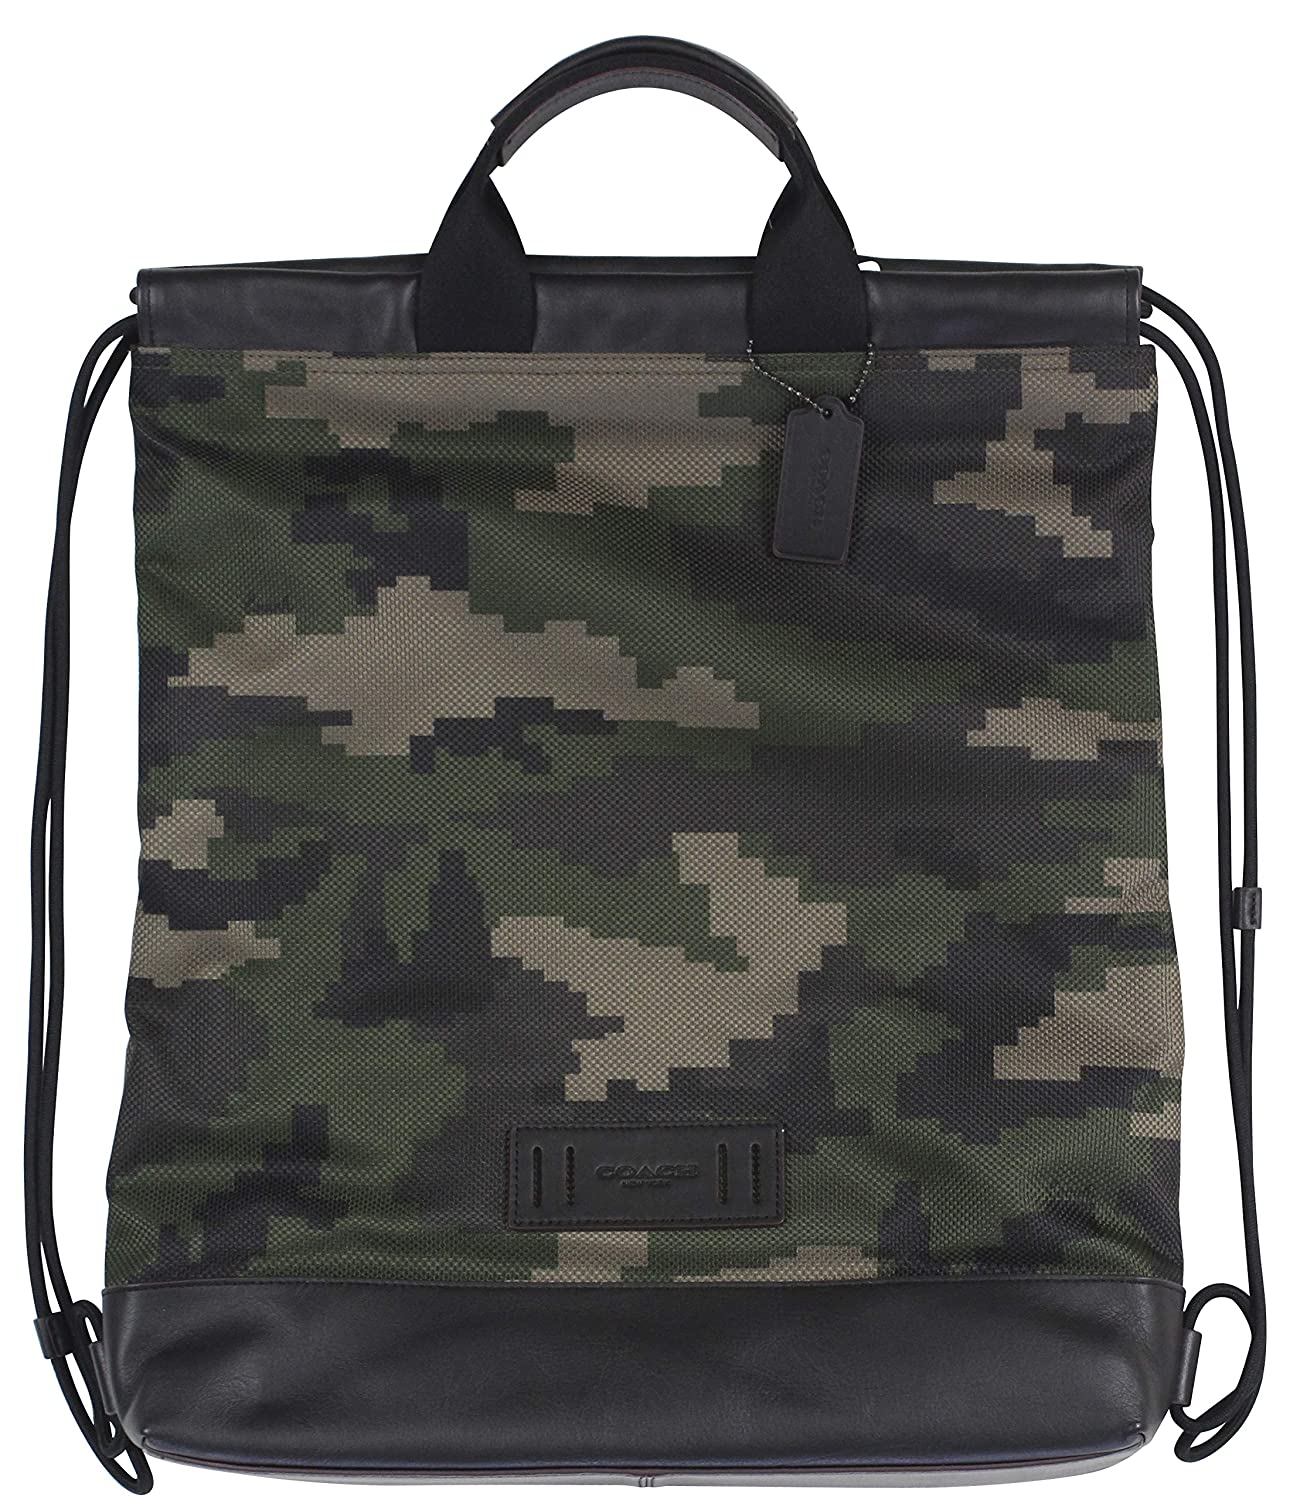 Image of Coach Men's Terrain Drawstring Slim Backpack Bag in Dark Green Camo, Style F72926. Luggage